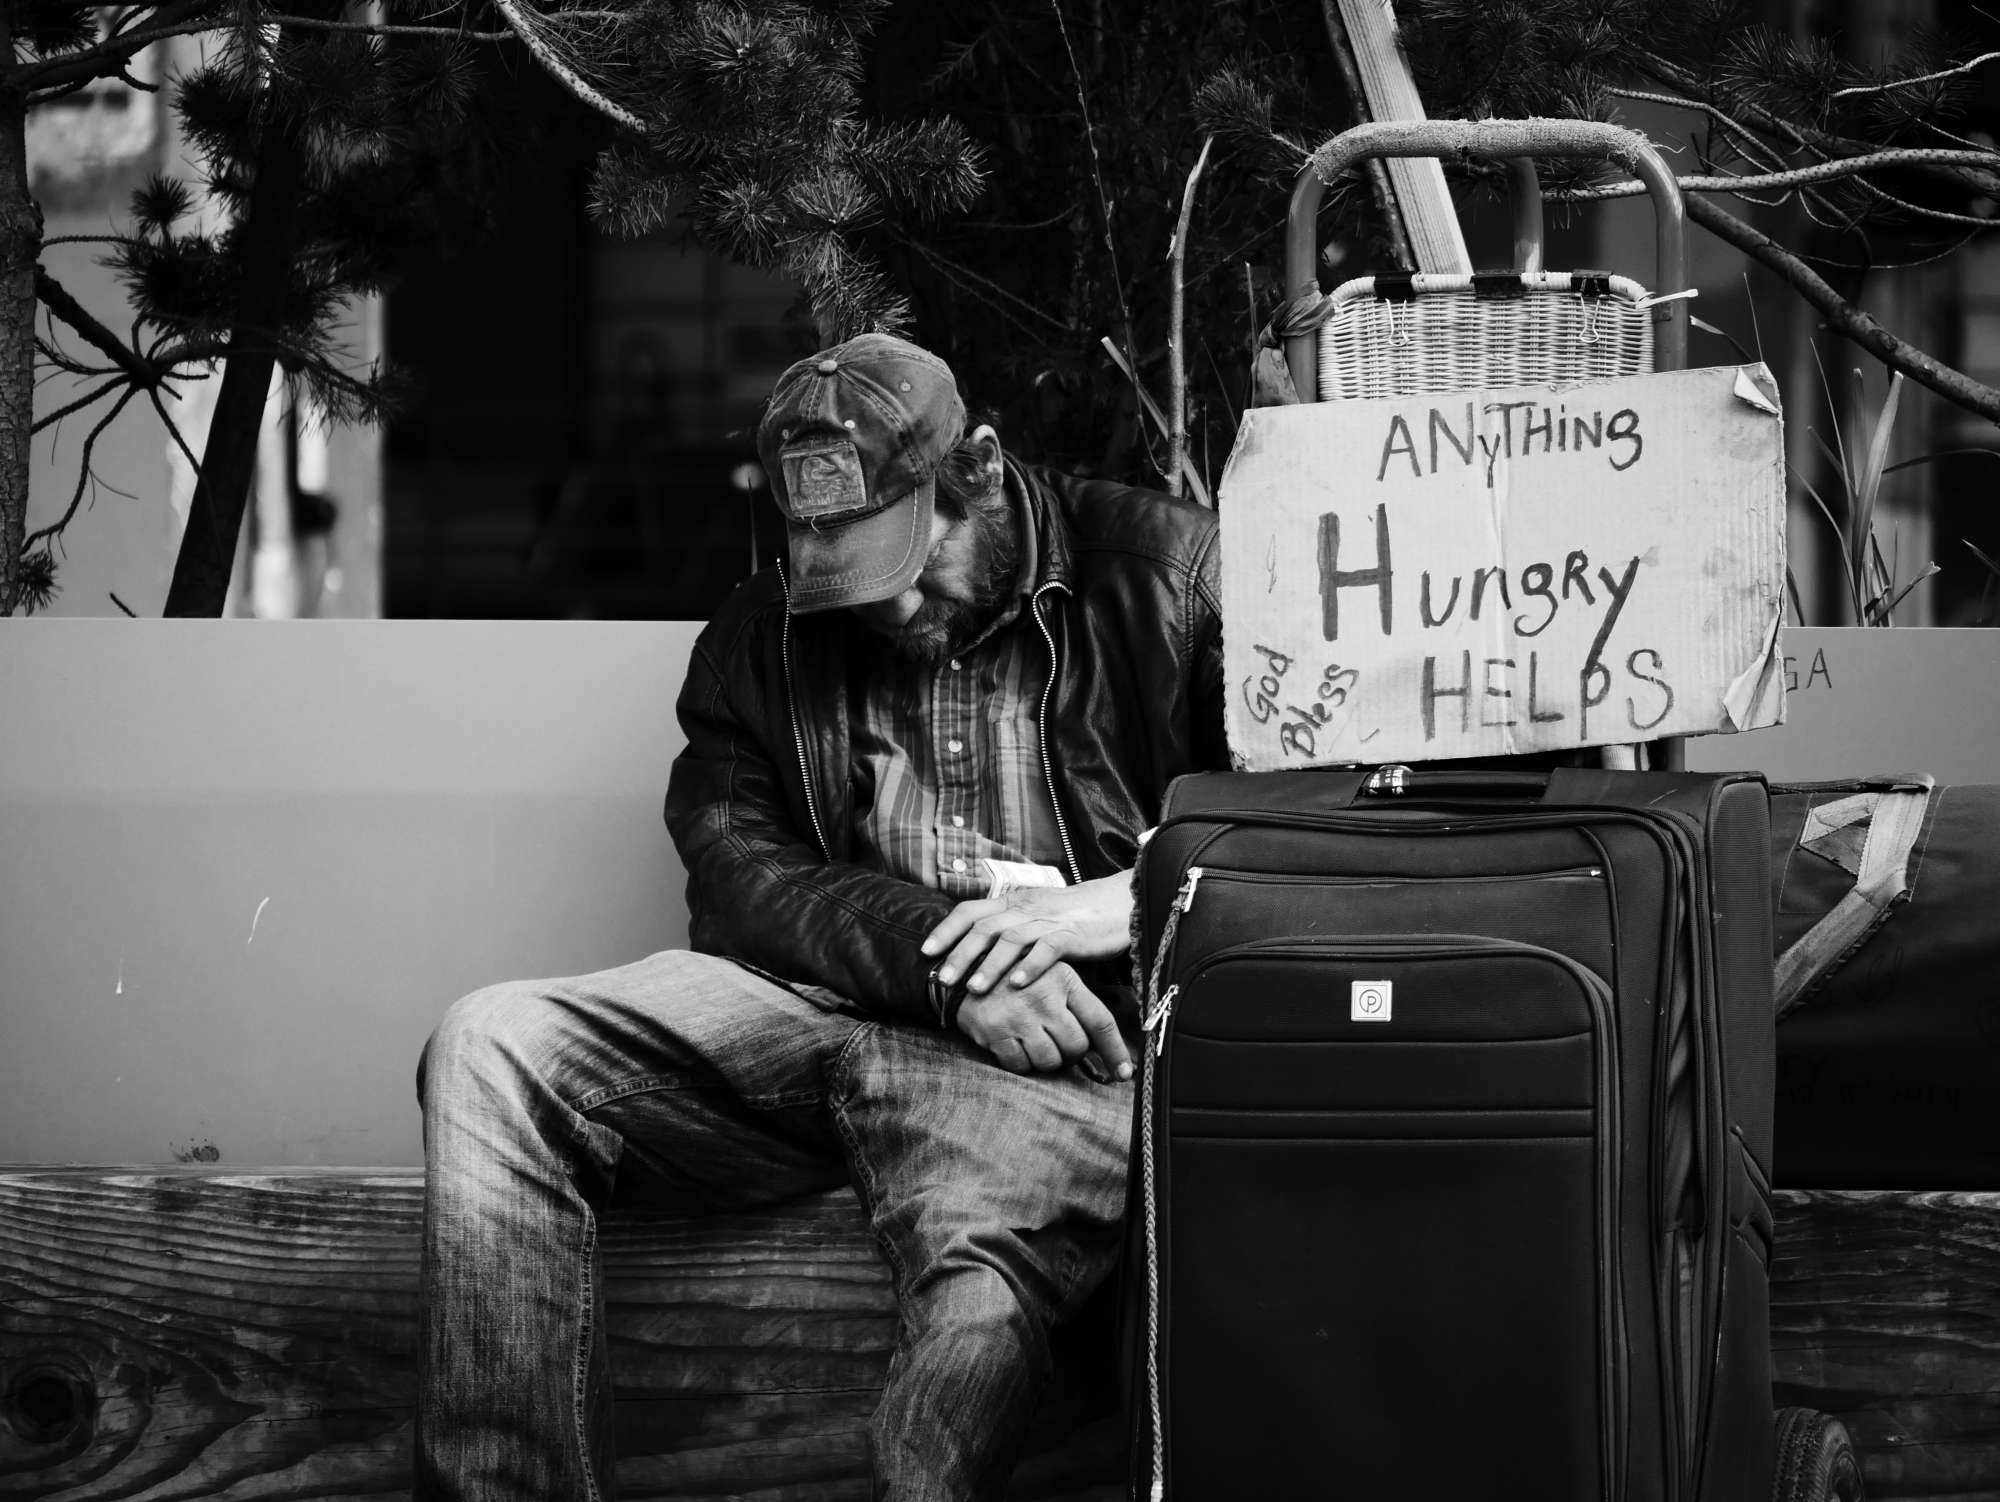 Homeless man holds Hungry sign